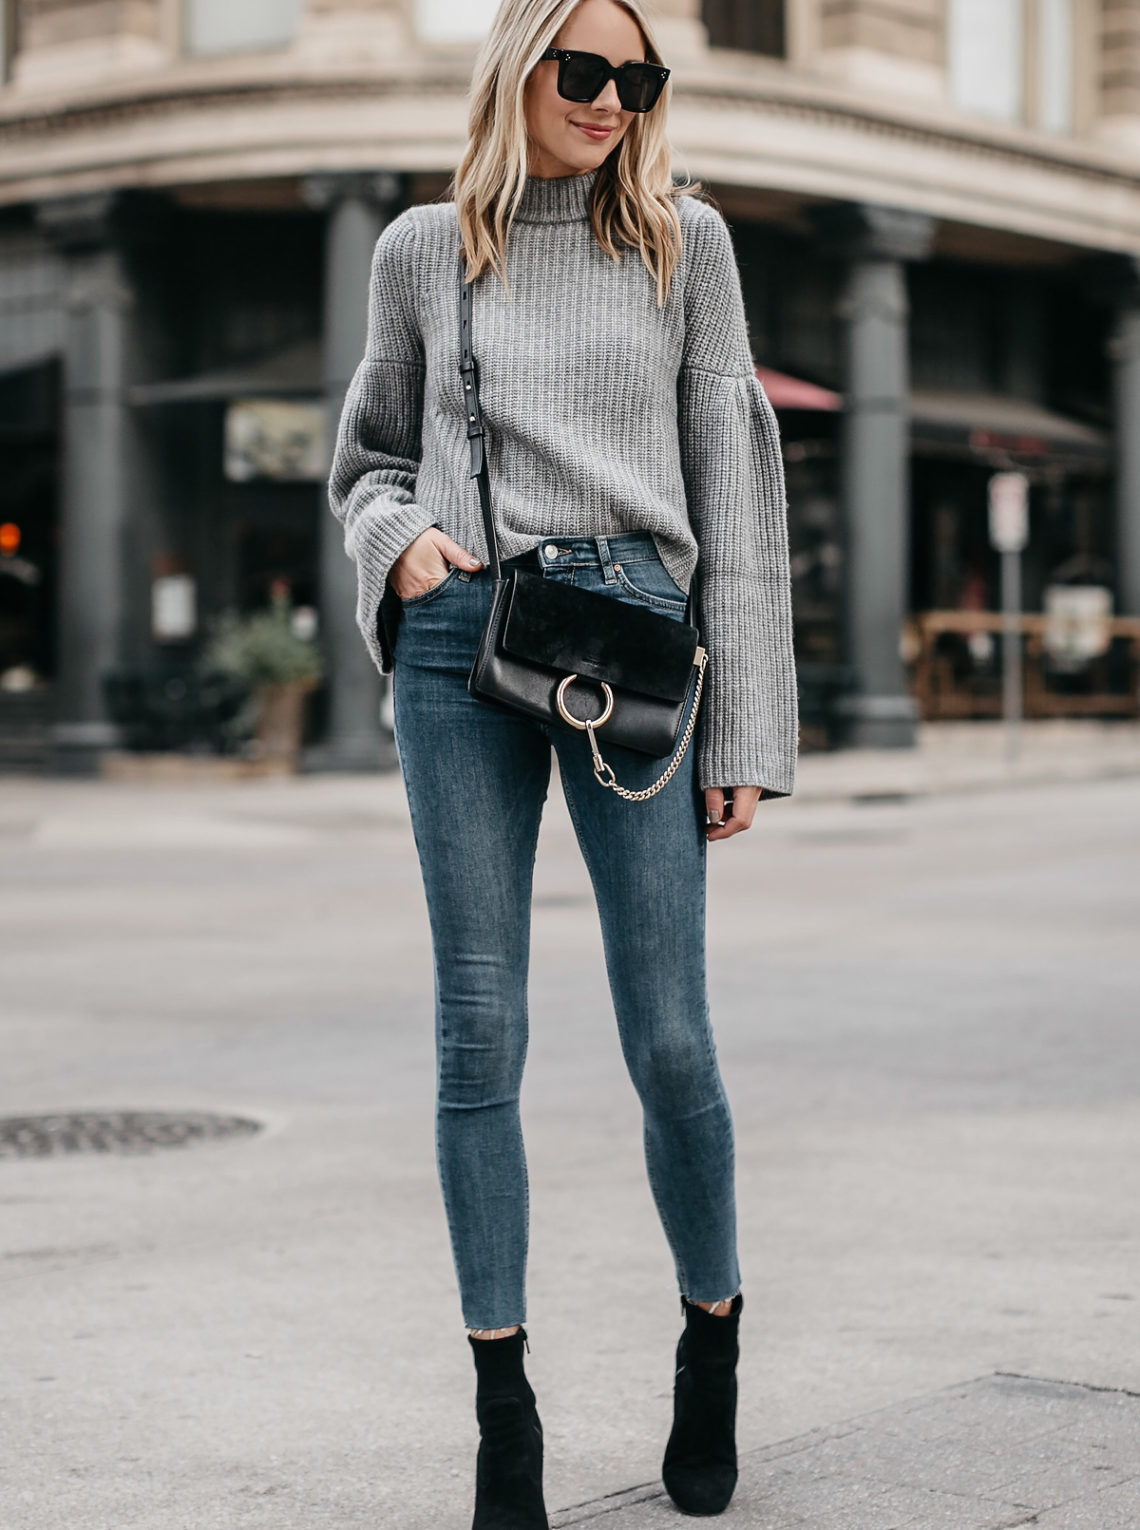 Blonde Woman Wearing Grey Bell Sleeve Sweater Denim Skinny Jeans Chloe Faye Black Handbag Black Booties Fashion Jackson Dallas Blogger Fashion Blogger Street Style